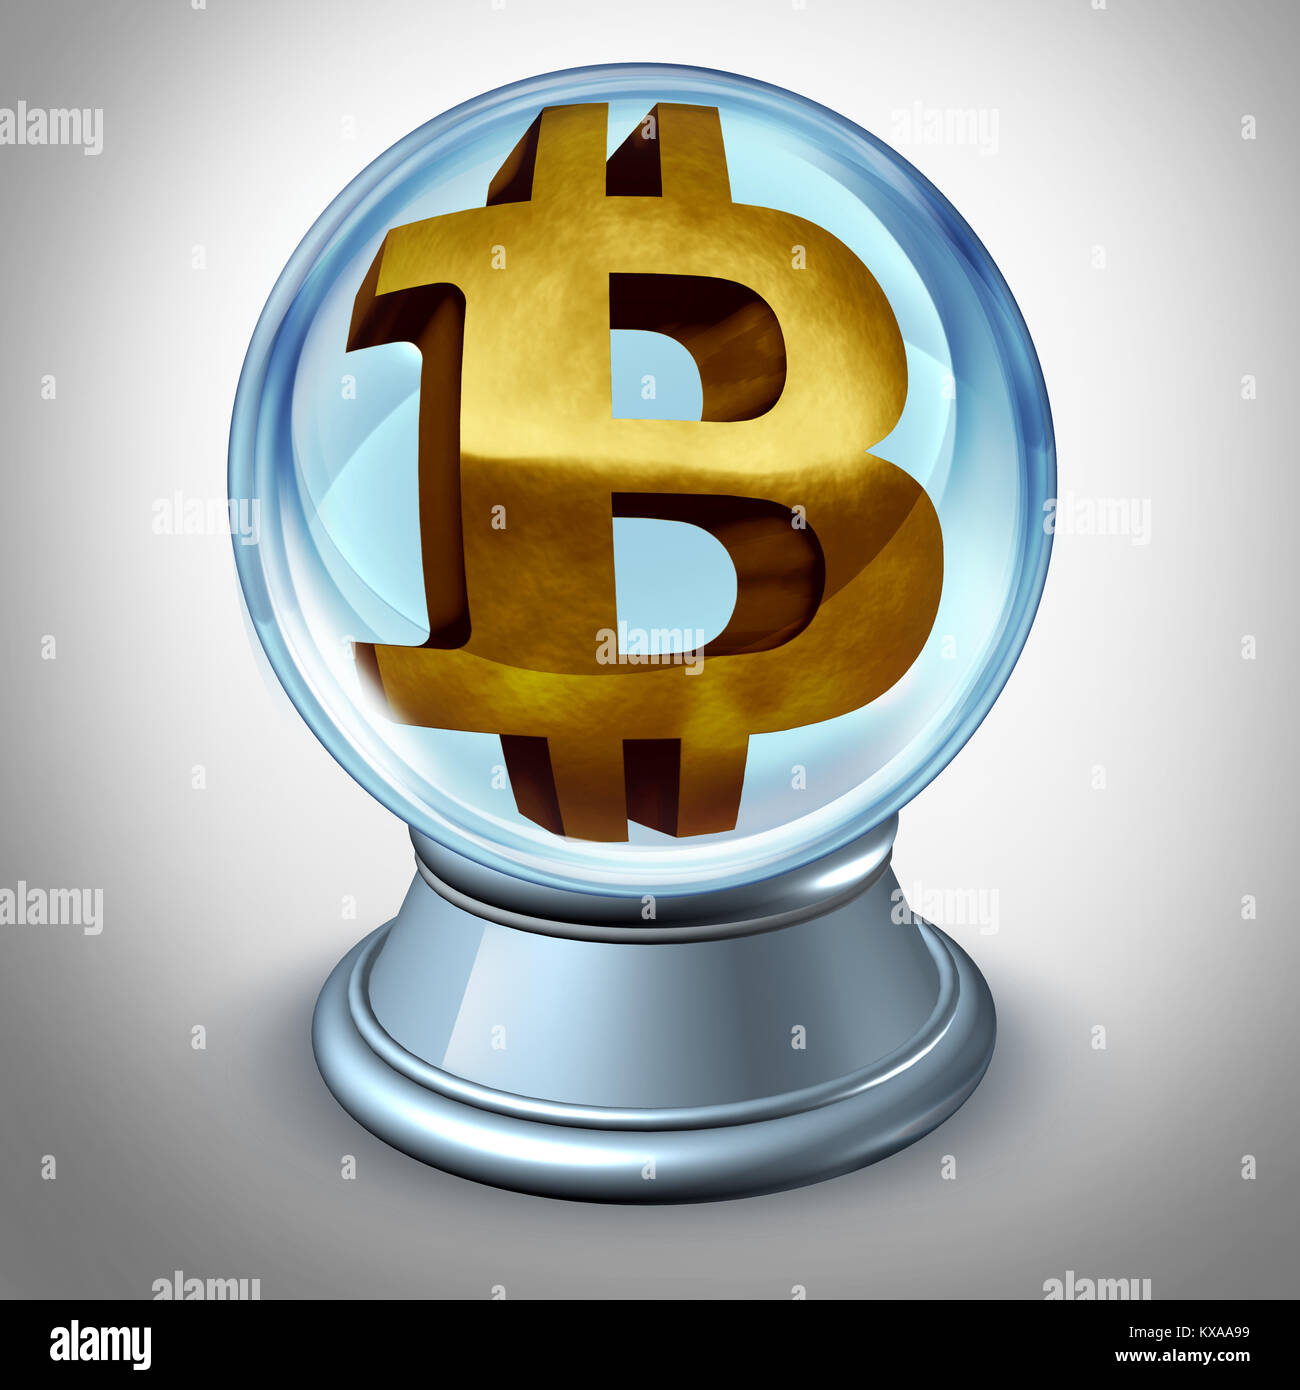 Bitcoin future and cryptocurrency prediction and predicting the value of digital currency as a financial symbol - Stock Image